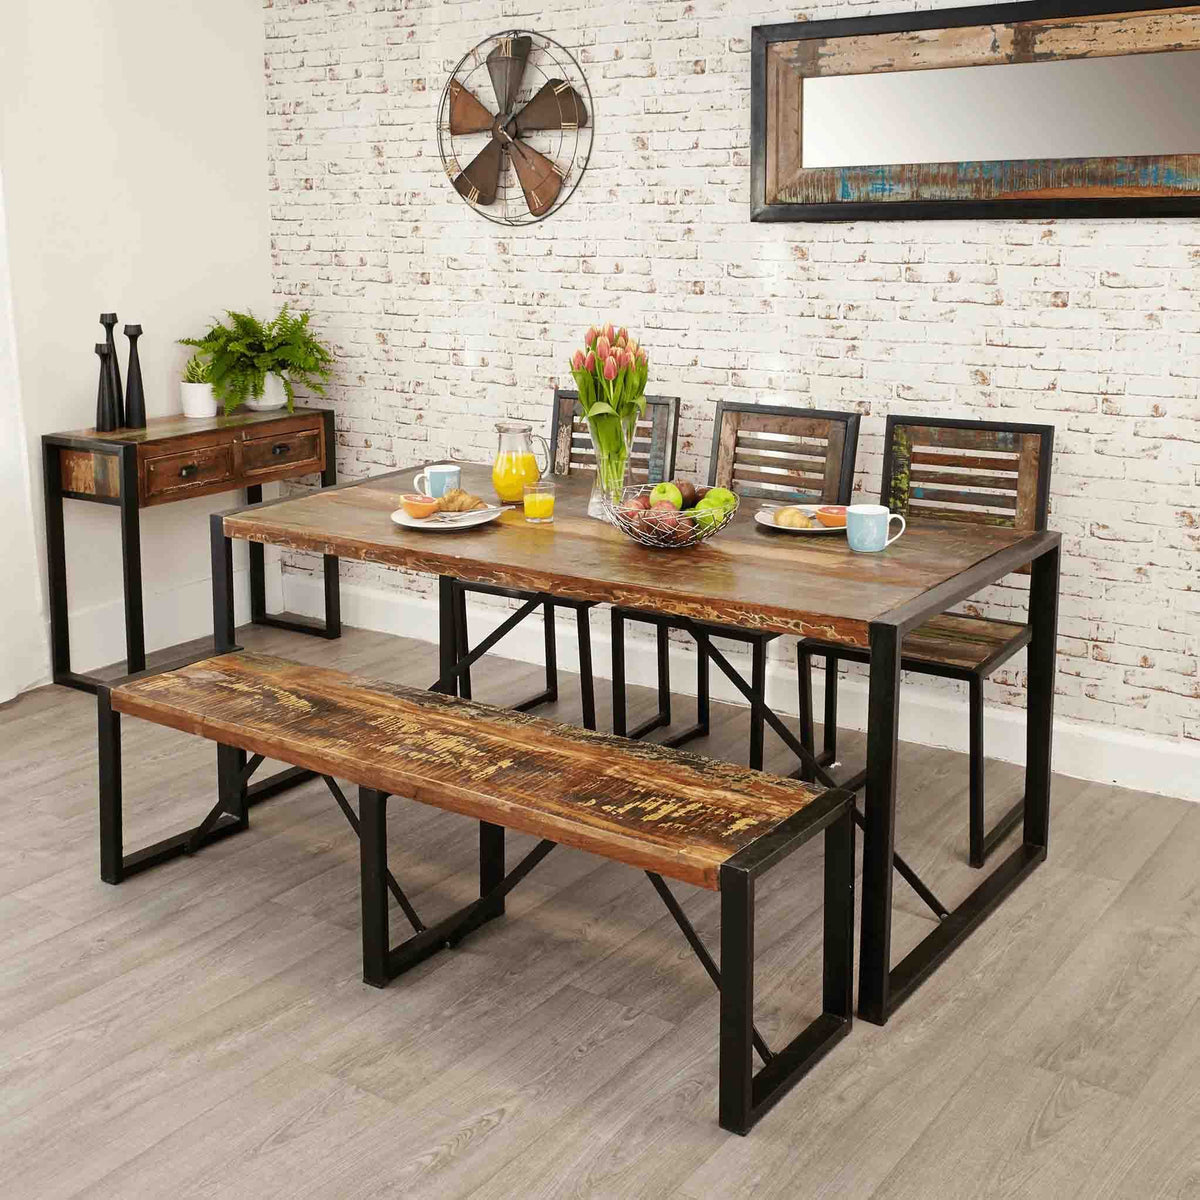 Lifestyle image of The Urban Chic Large Industrial Reclaimed Wood Dining Table